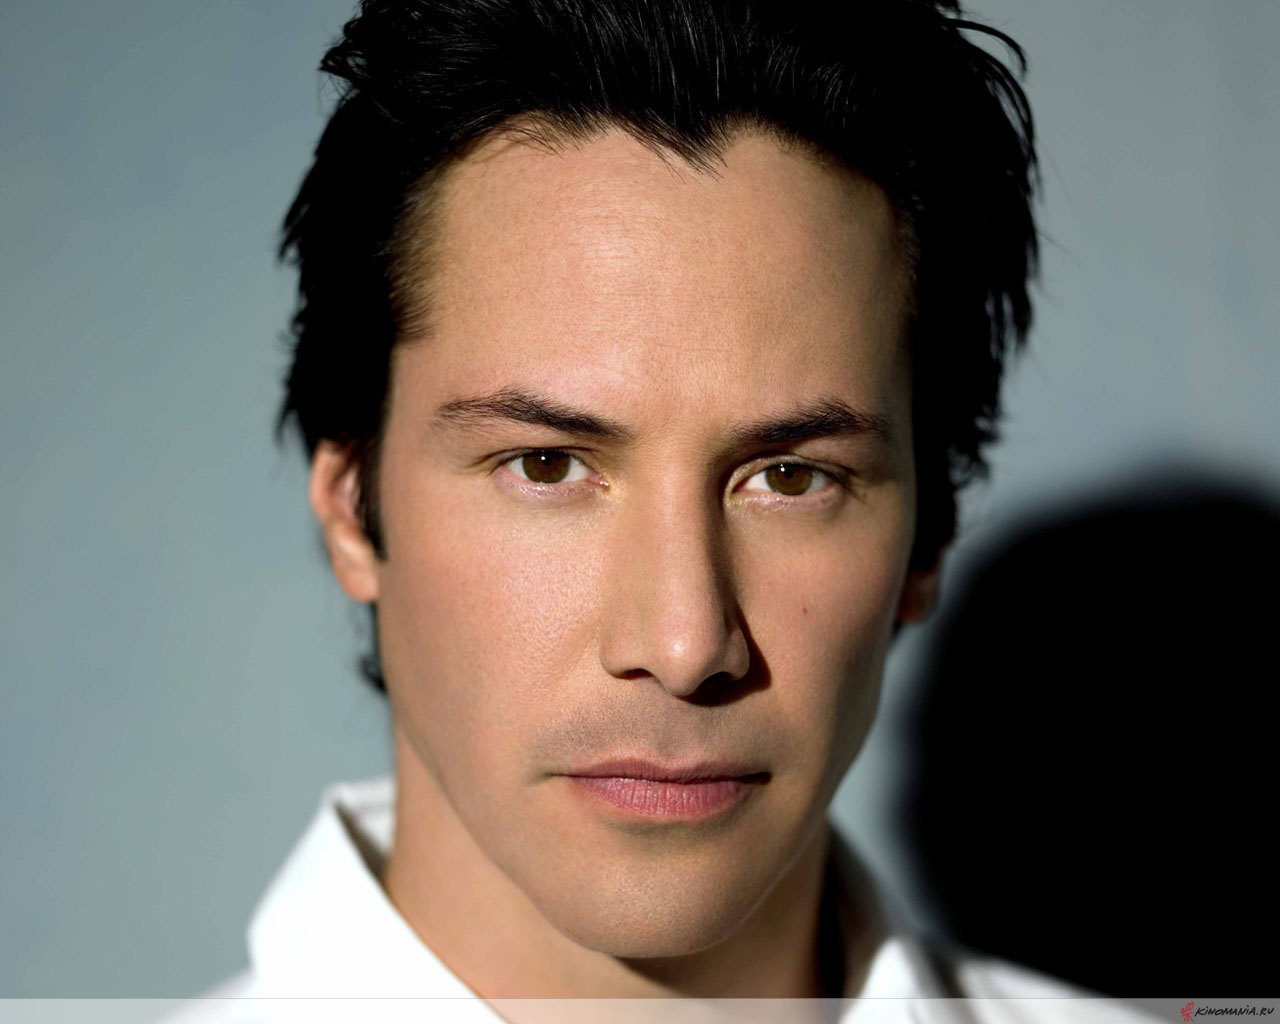 هالیوود Keanu Reeves - Keanu Reeves Wallpaper (9231633) - Fanpop